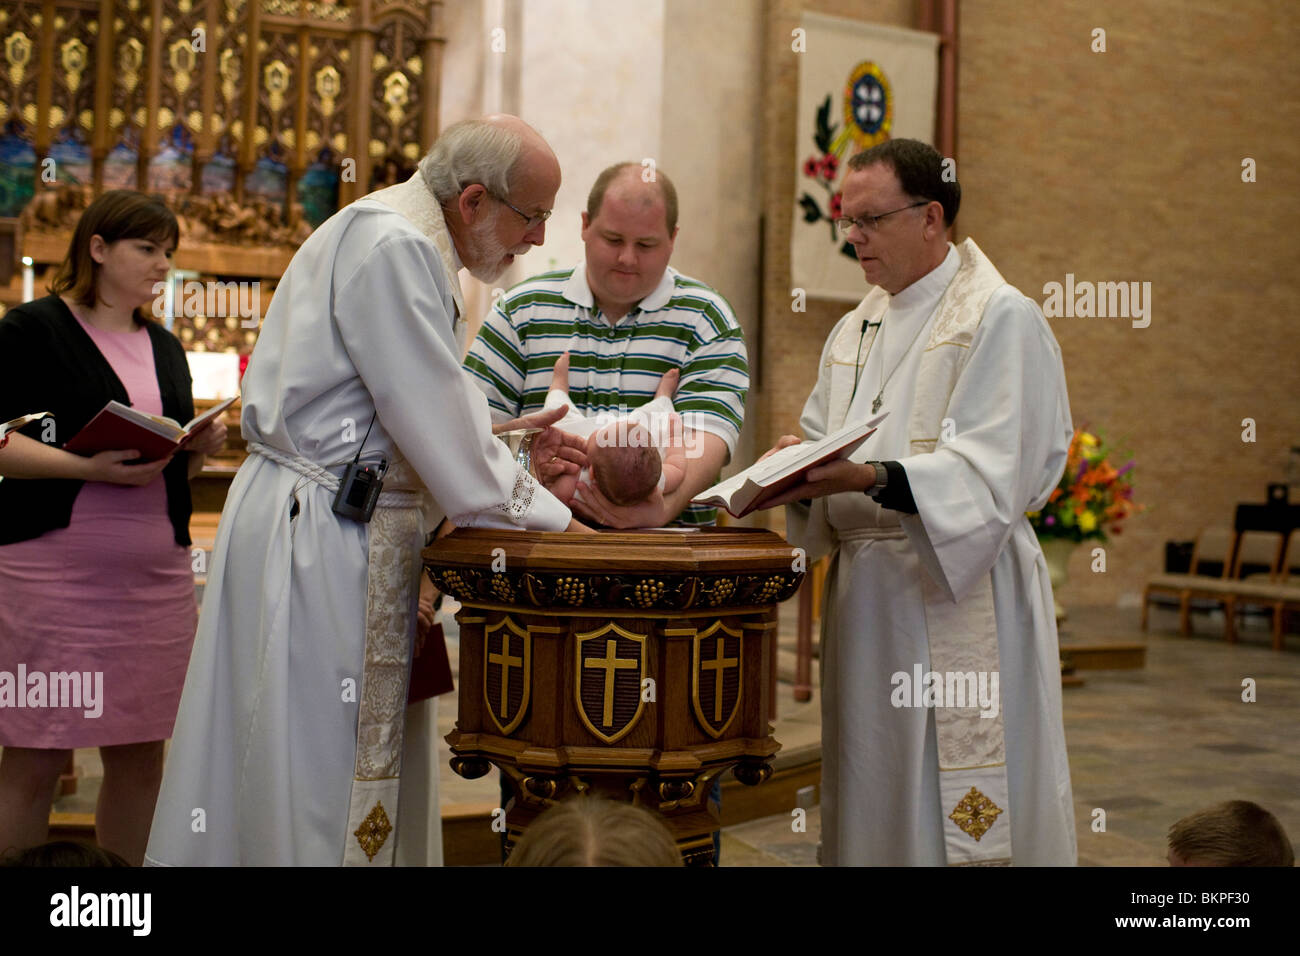 Pastors baptize infant girl in baptismal font as her father holds her and her mother watches on alter at Lutheran - Stock Image